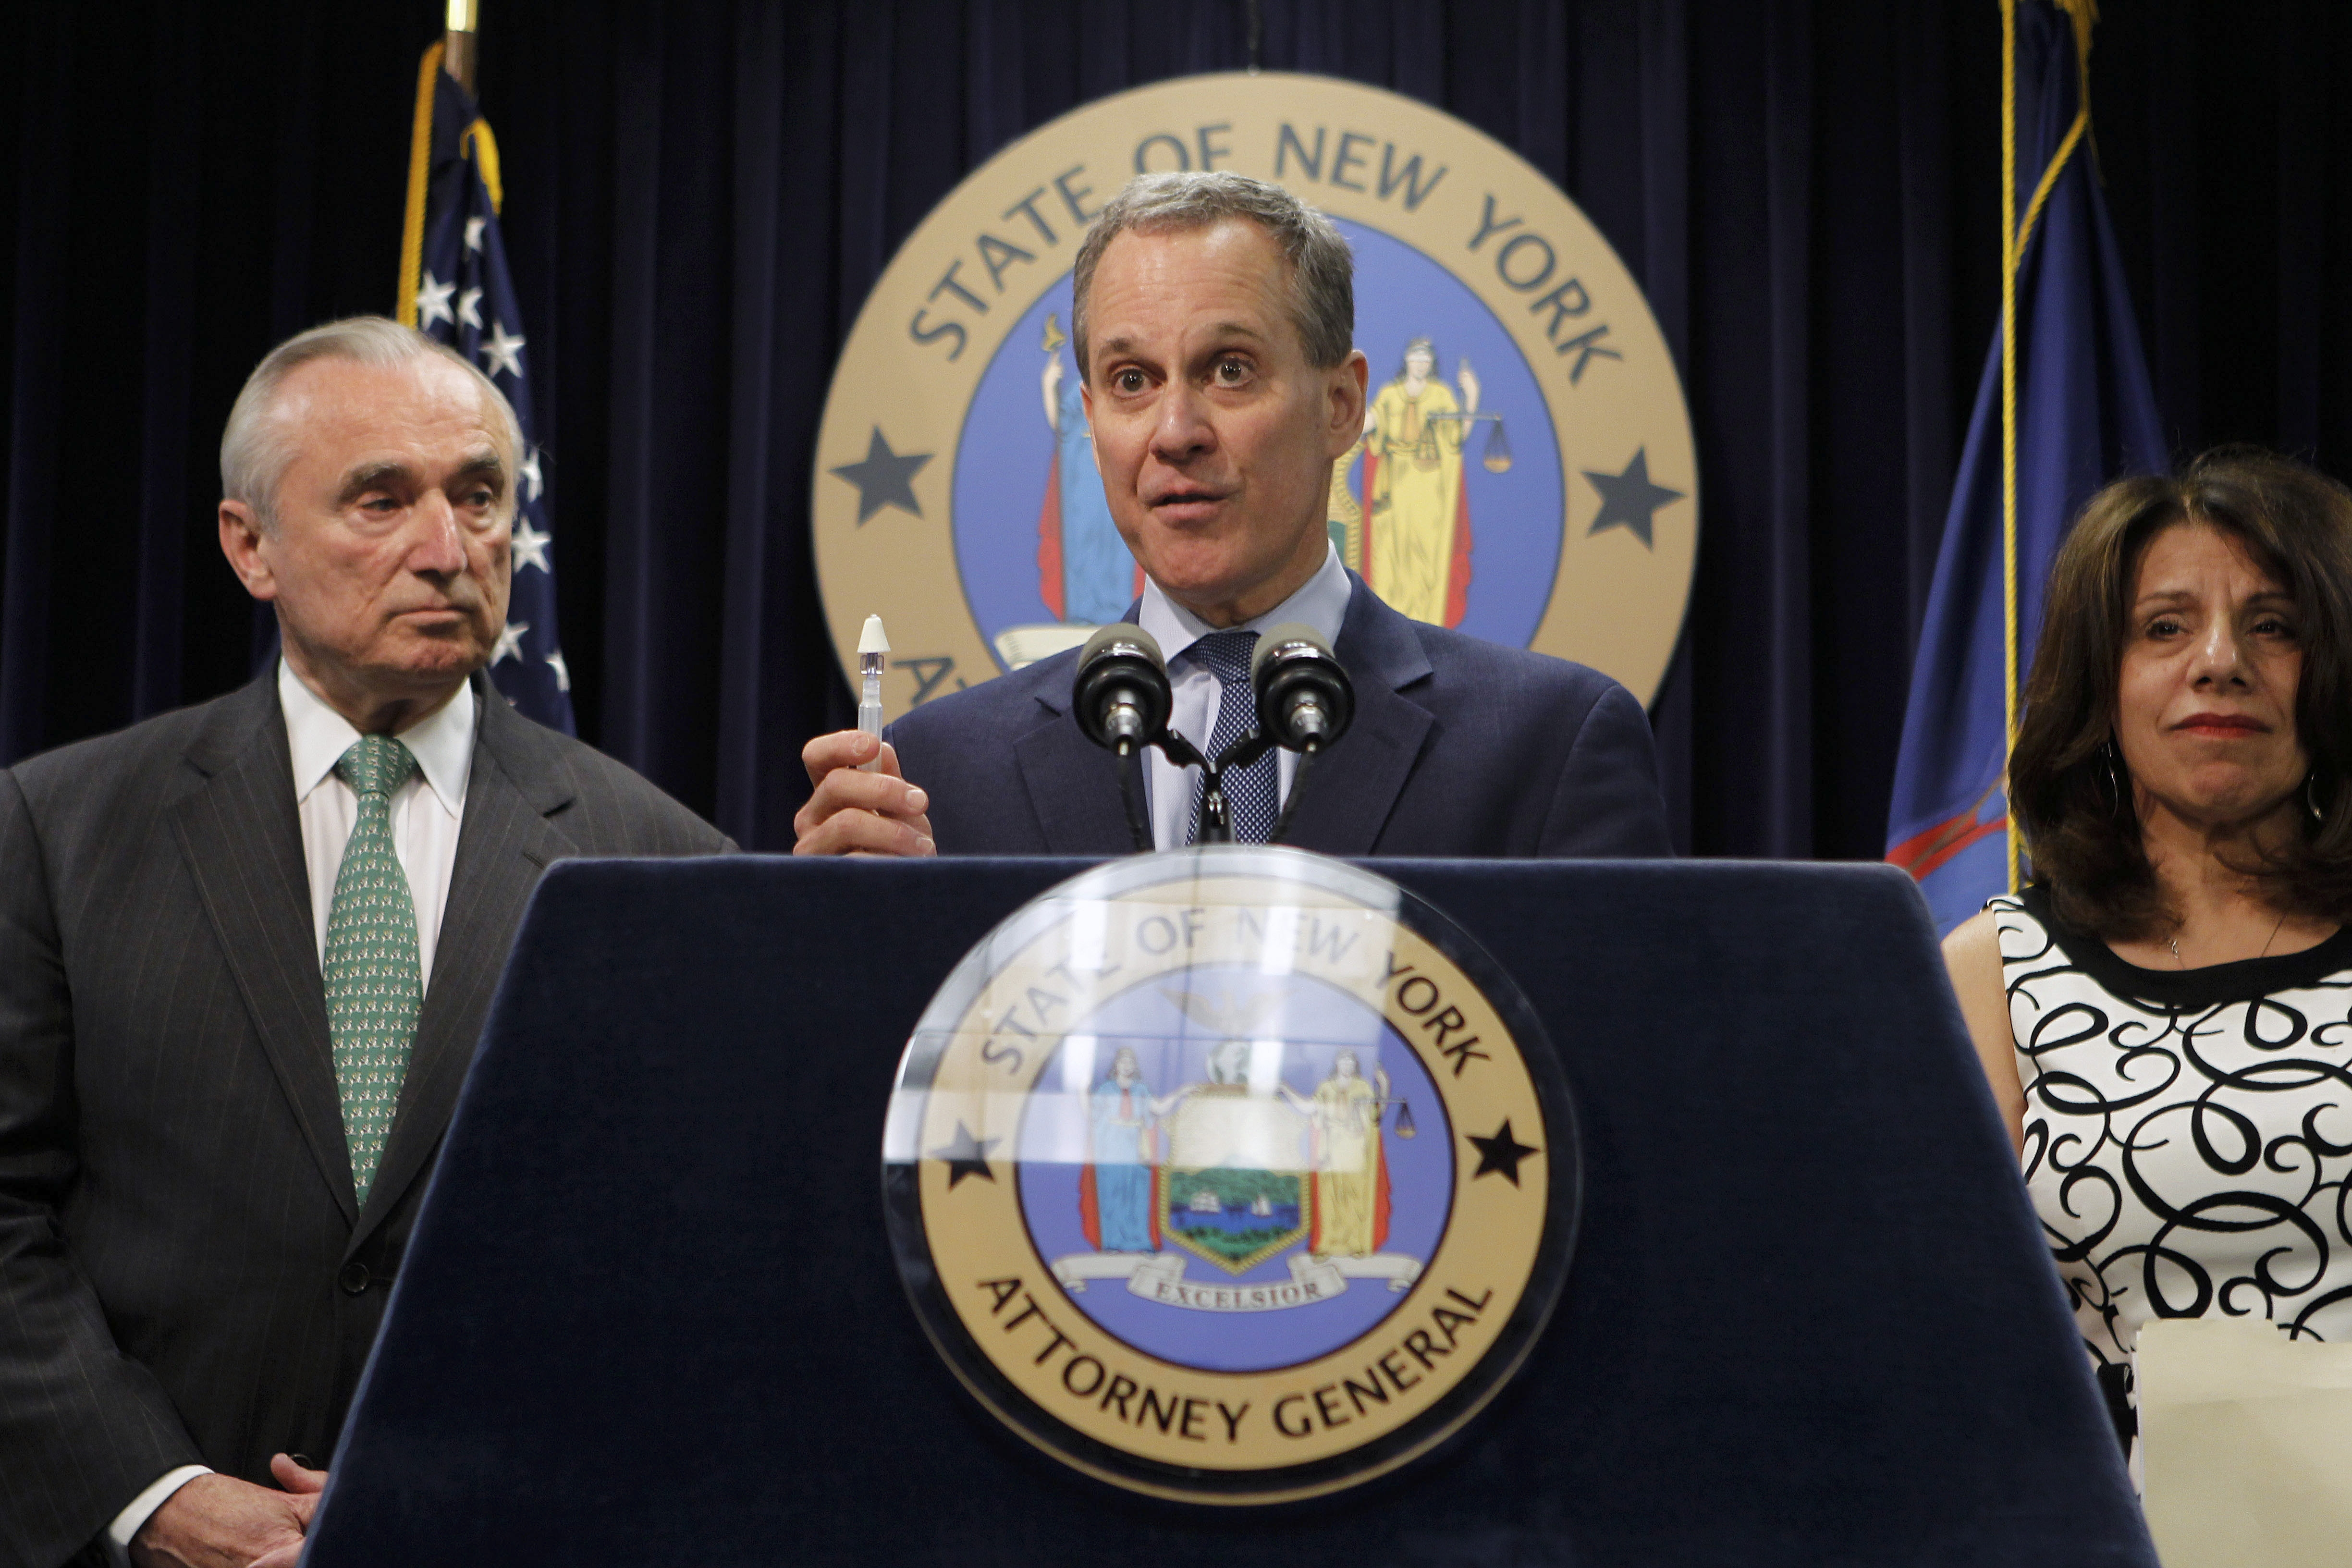 New York State Attorney General Eric Schneiderman partnered with other states on the settlement.